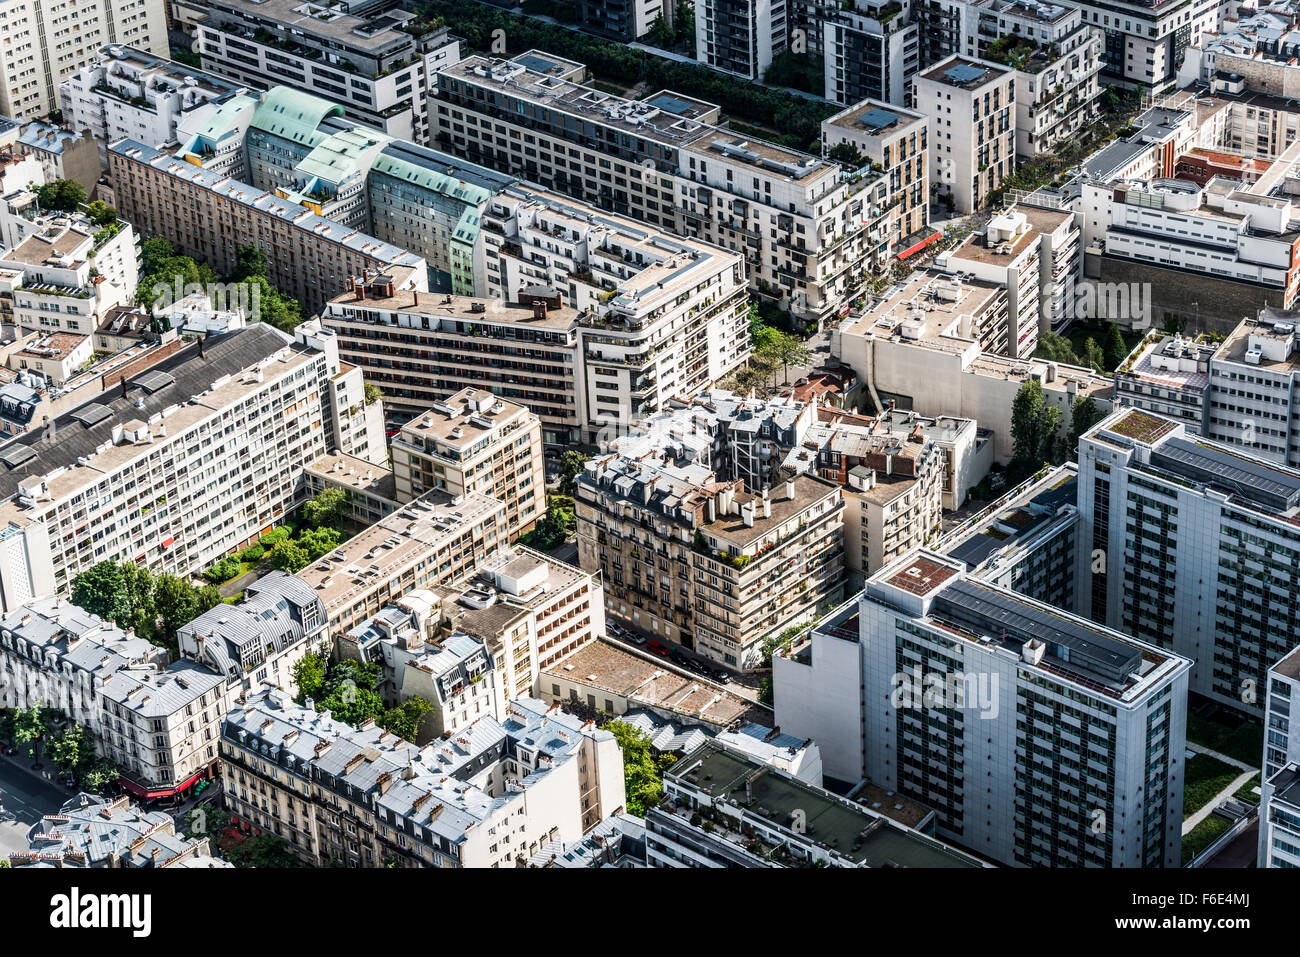 View of houses and streets from Eiffel Tower, La Défense, Paris, Ile-de-France, France - Stock Image